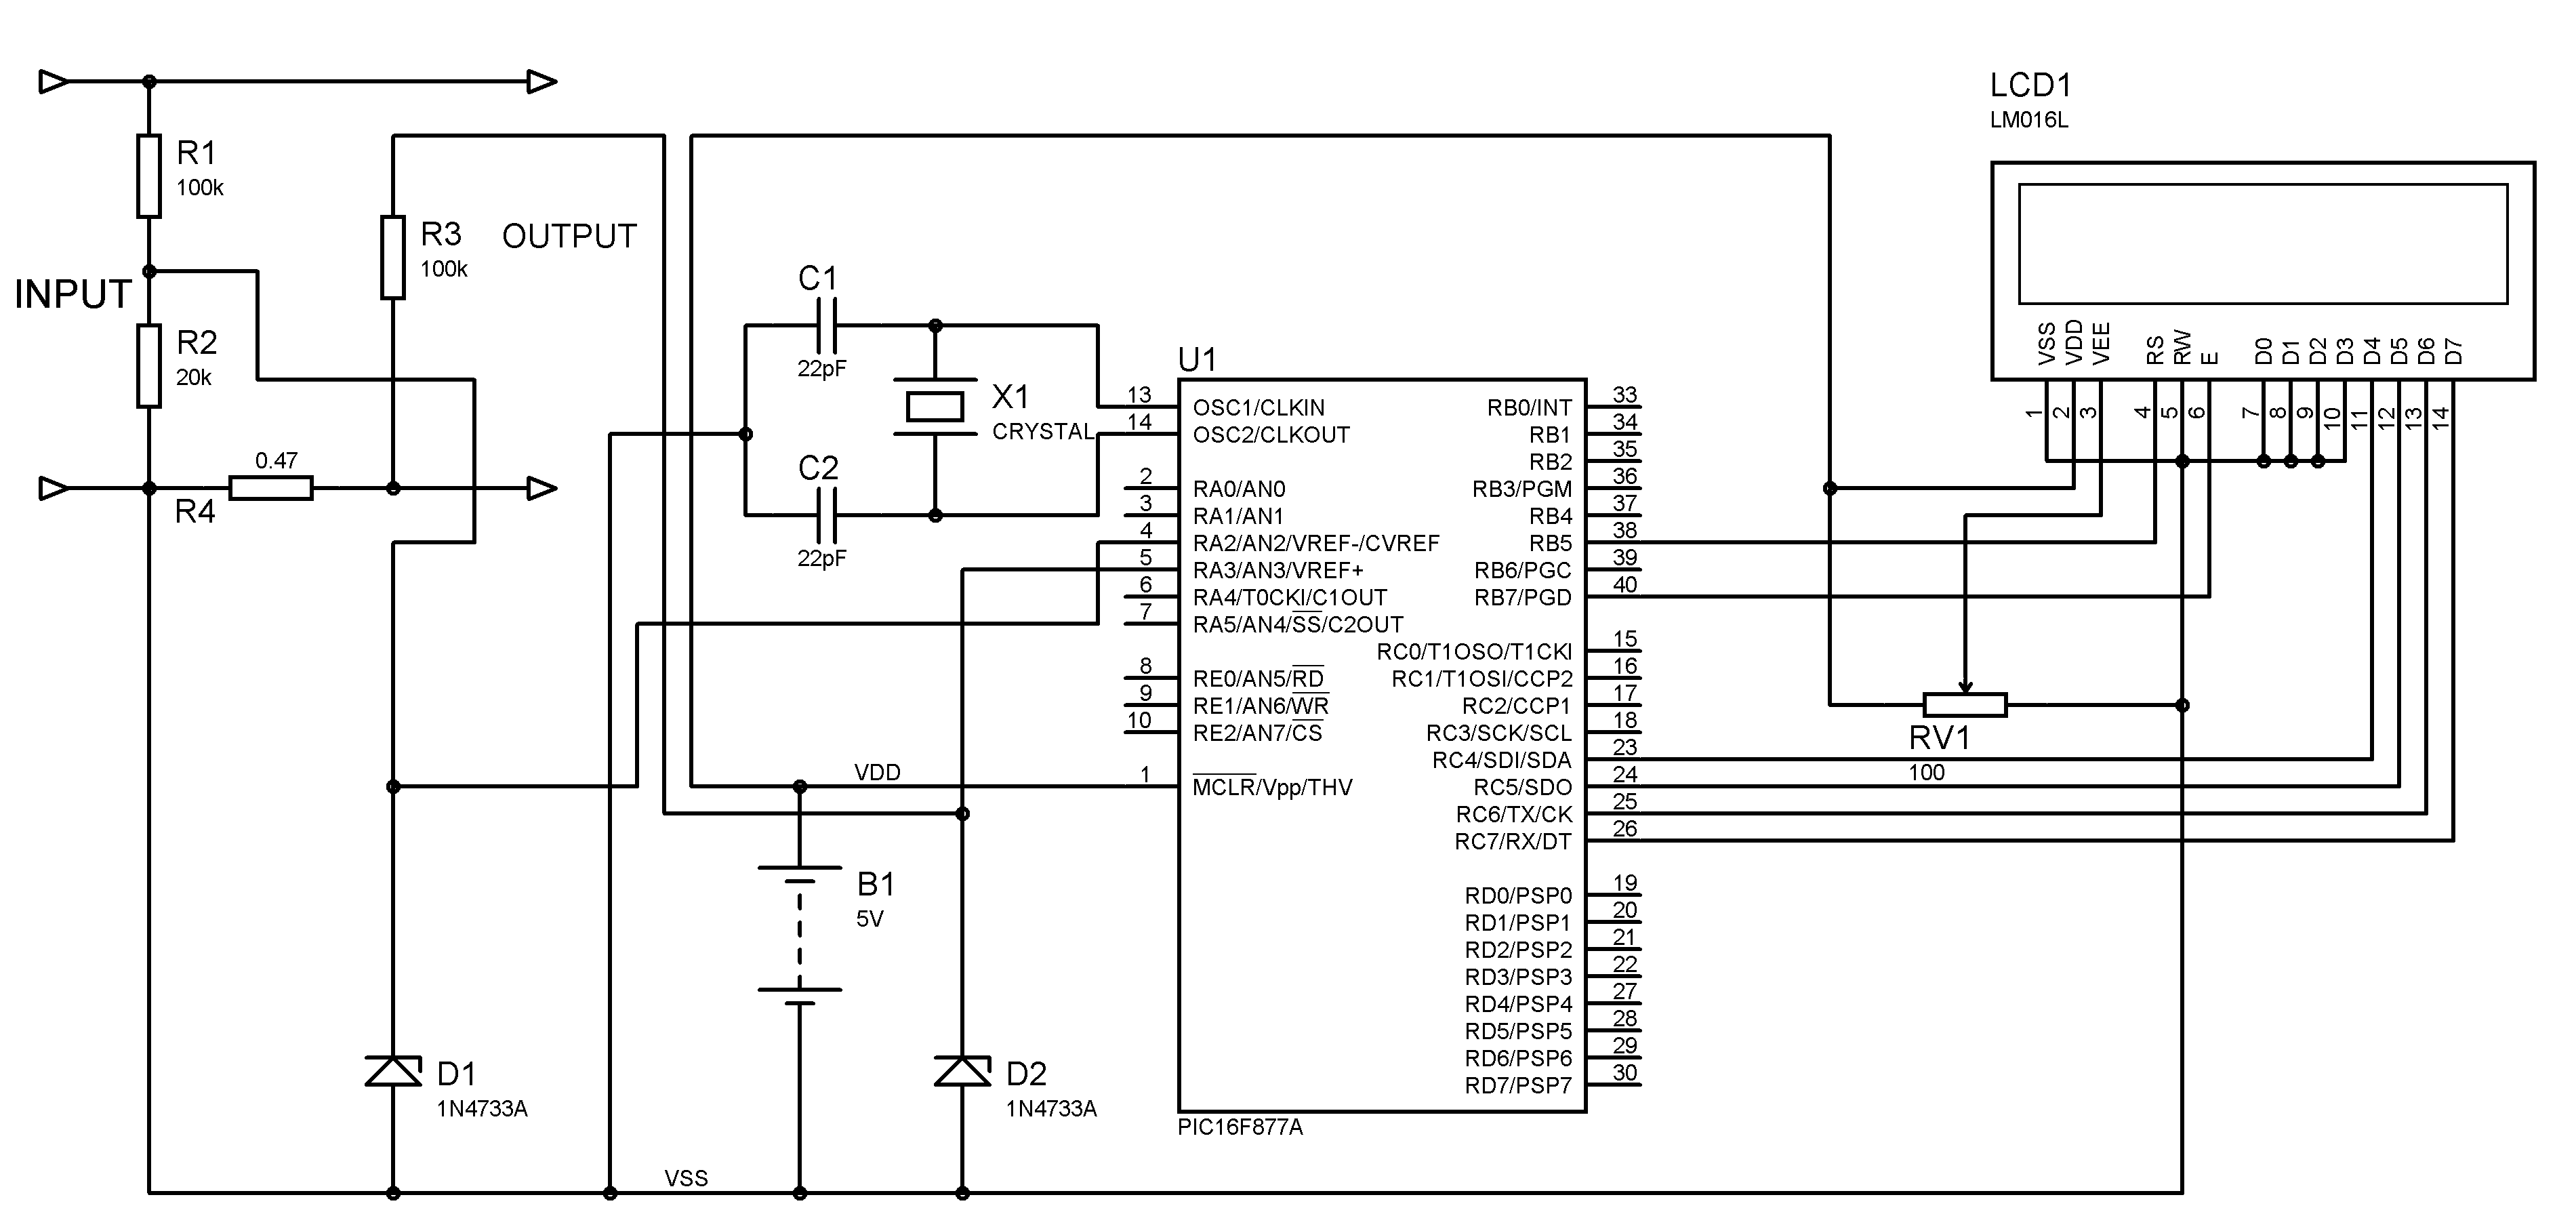 Voltmeter And Ammeter Using Pic Microcontroller Schematic To Show The Motor Control Circuit A D Converter Diagram